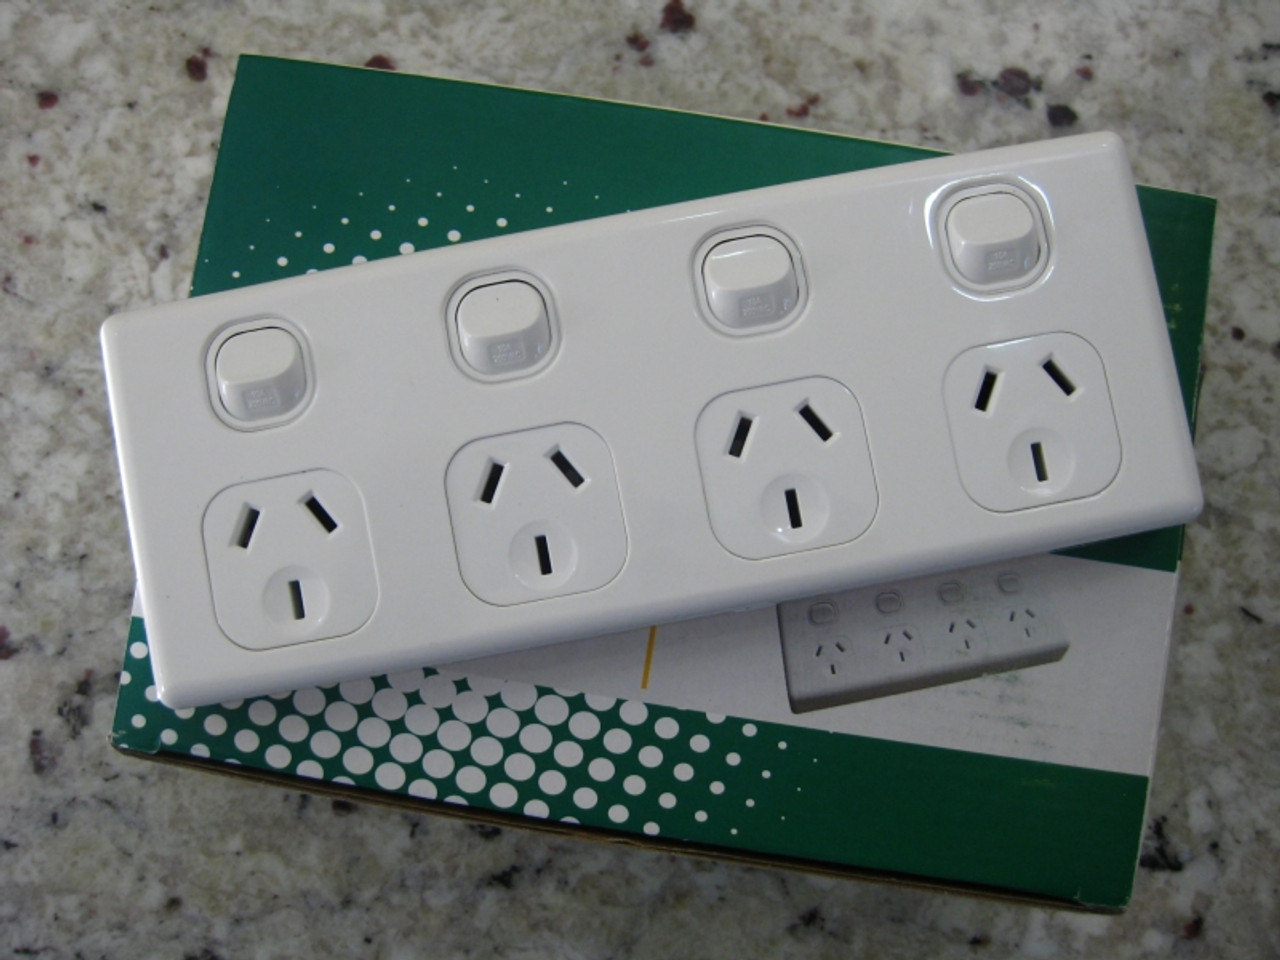 10 Amp Quad Power Point 4 Gang Socket Outlet 10A SAA GPO - Electric ...